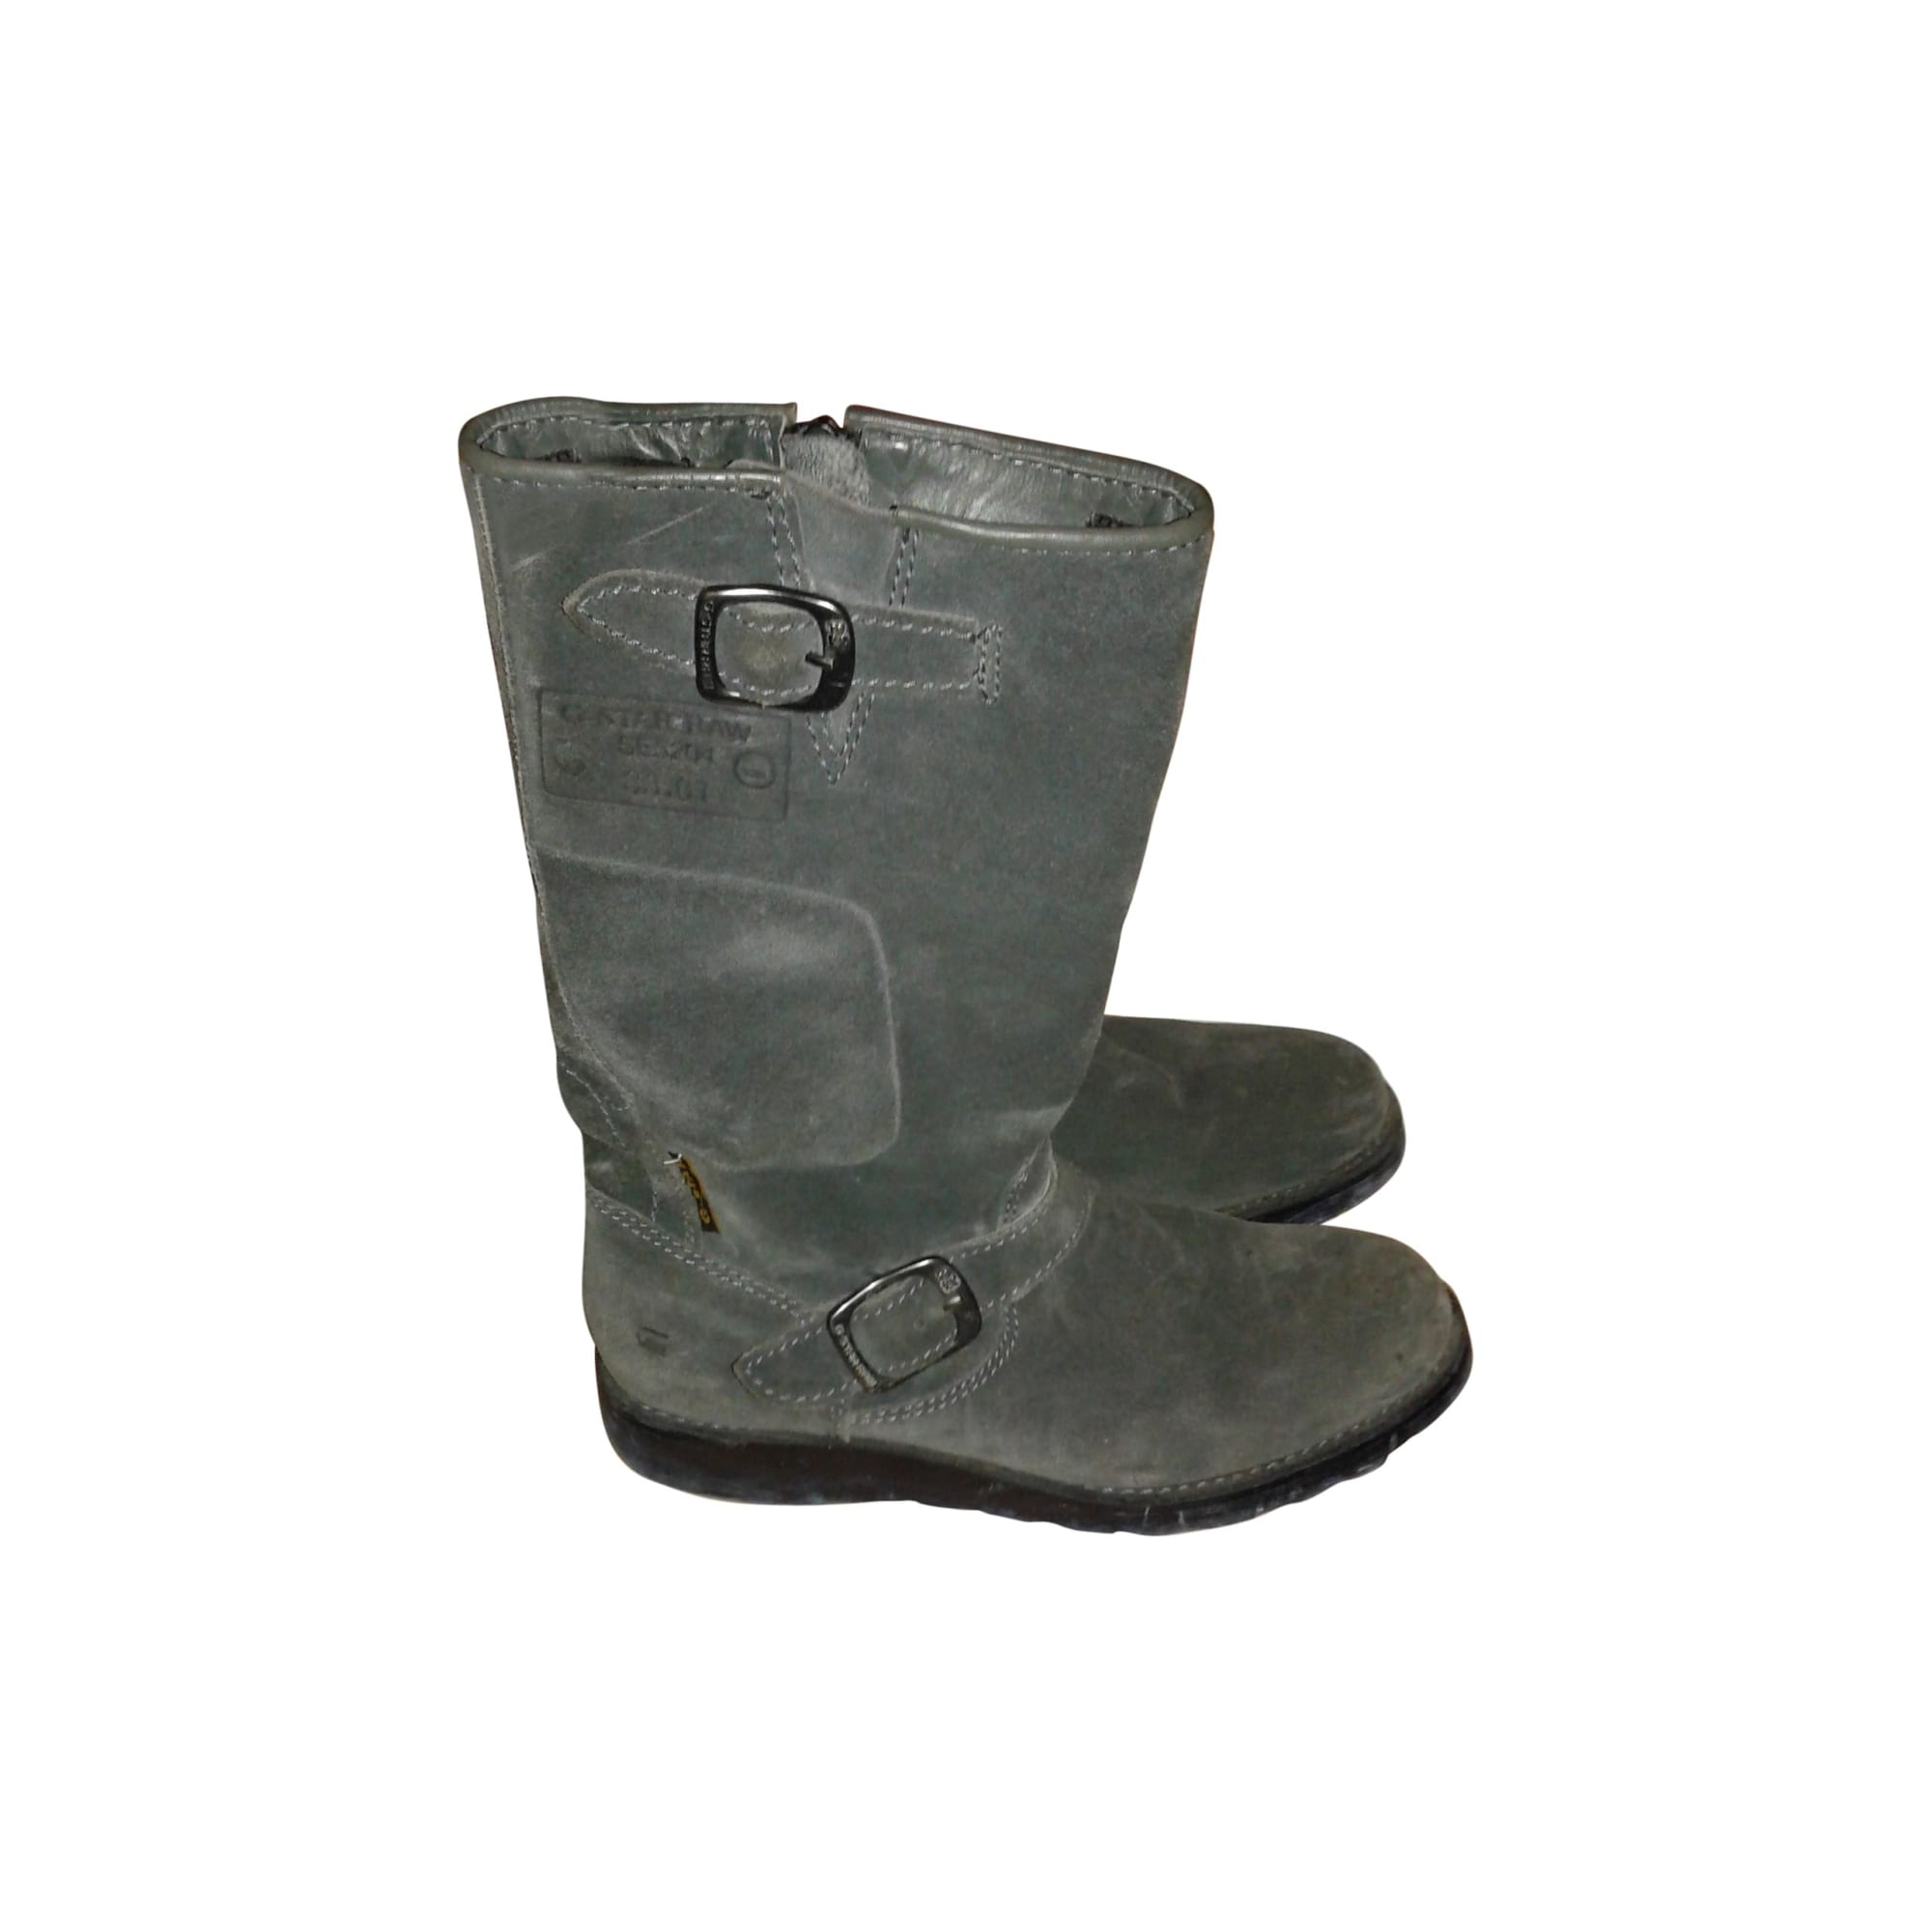 Bottes plates G-STAR Gris, anthracite